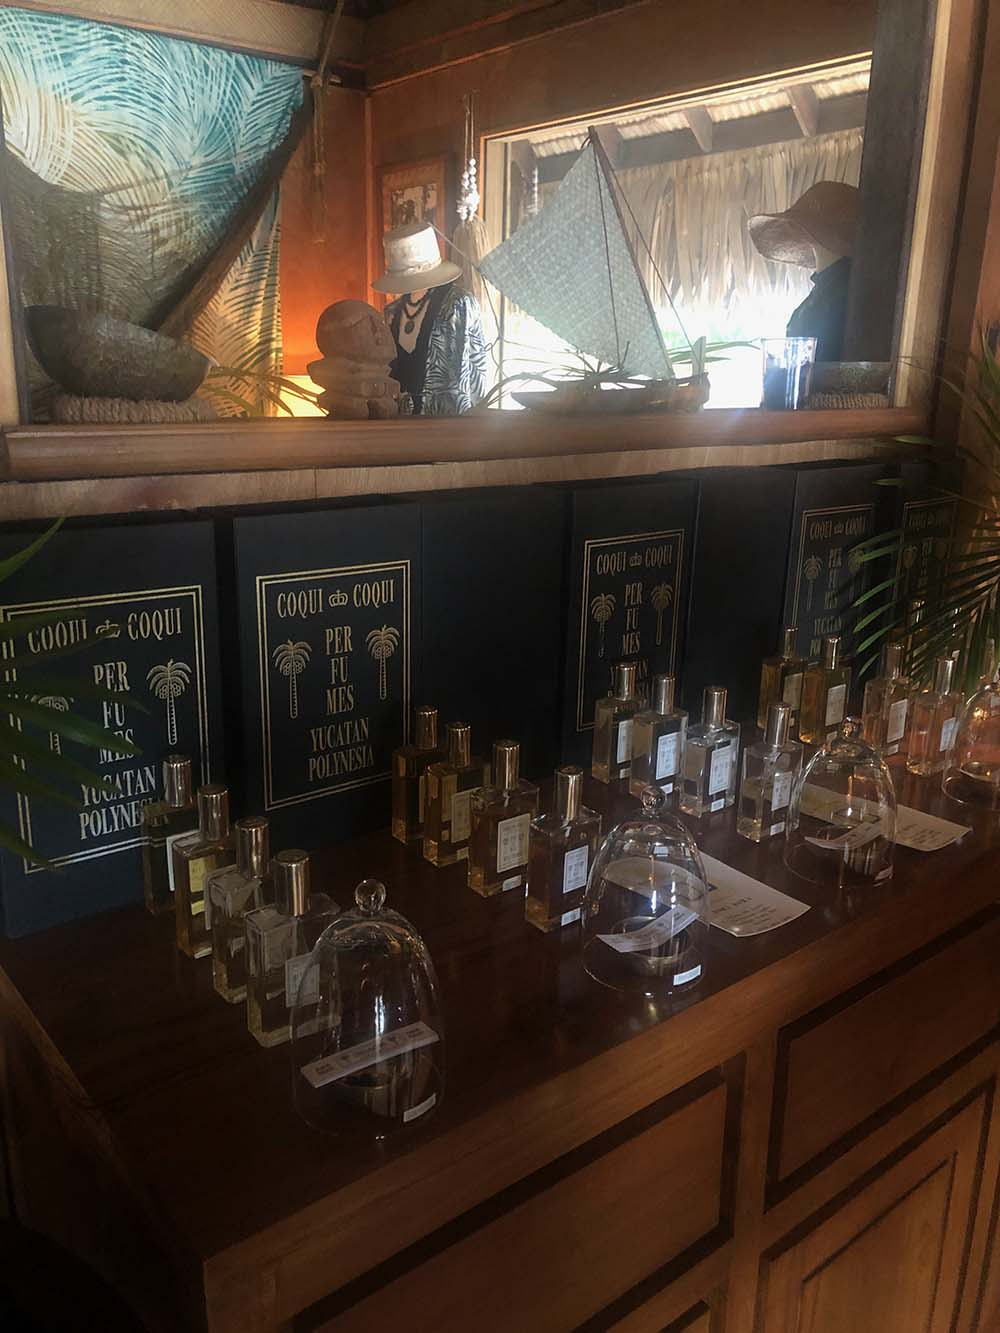 Unique fragrances, oils, beauty products, and scents for the home and body can be found in the boutique.